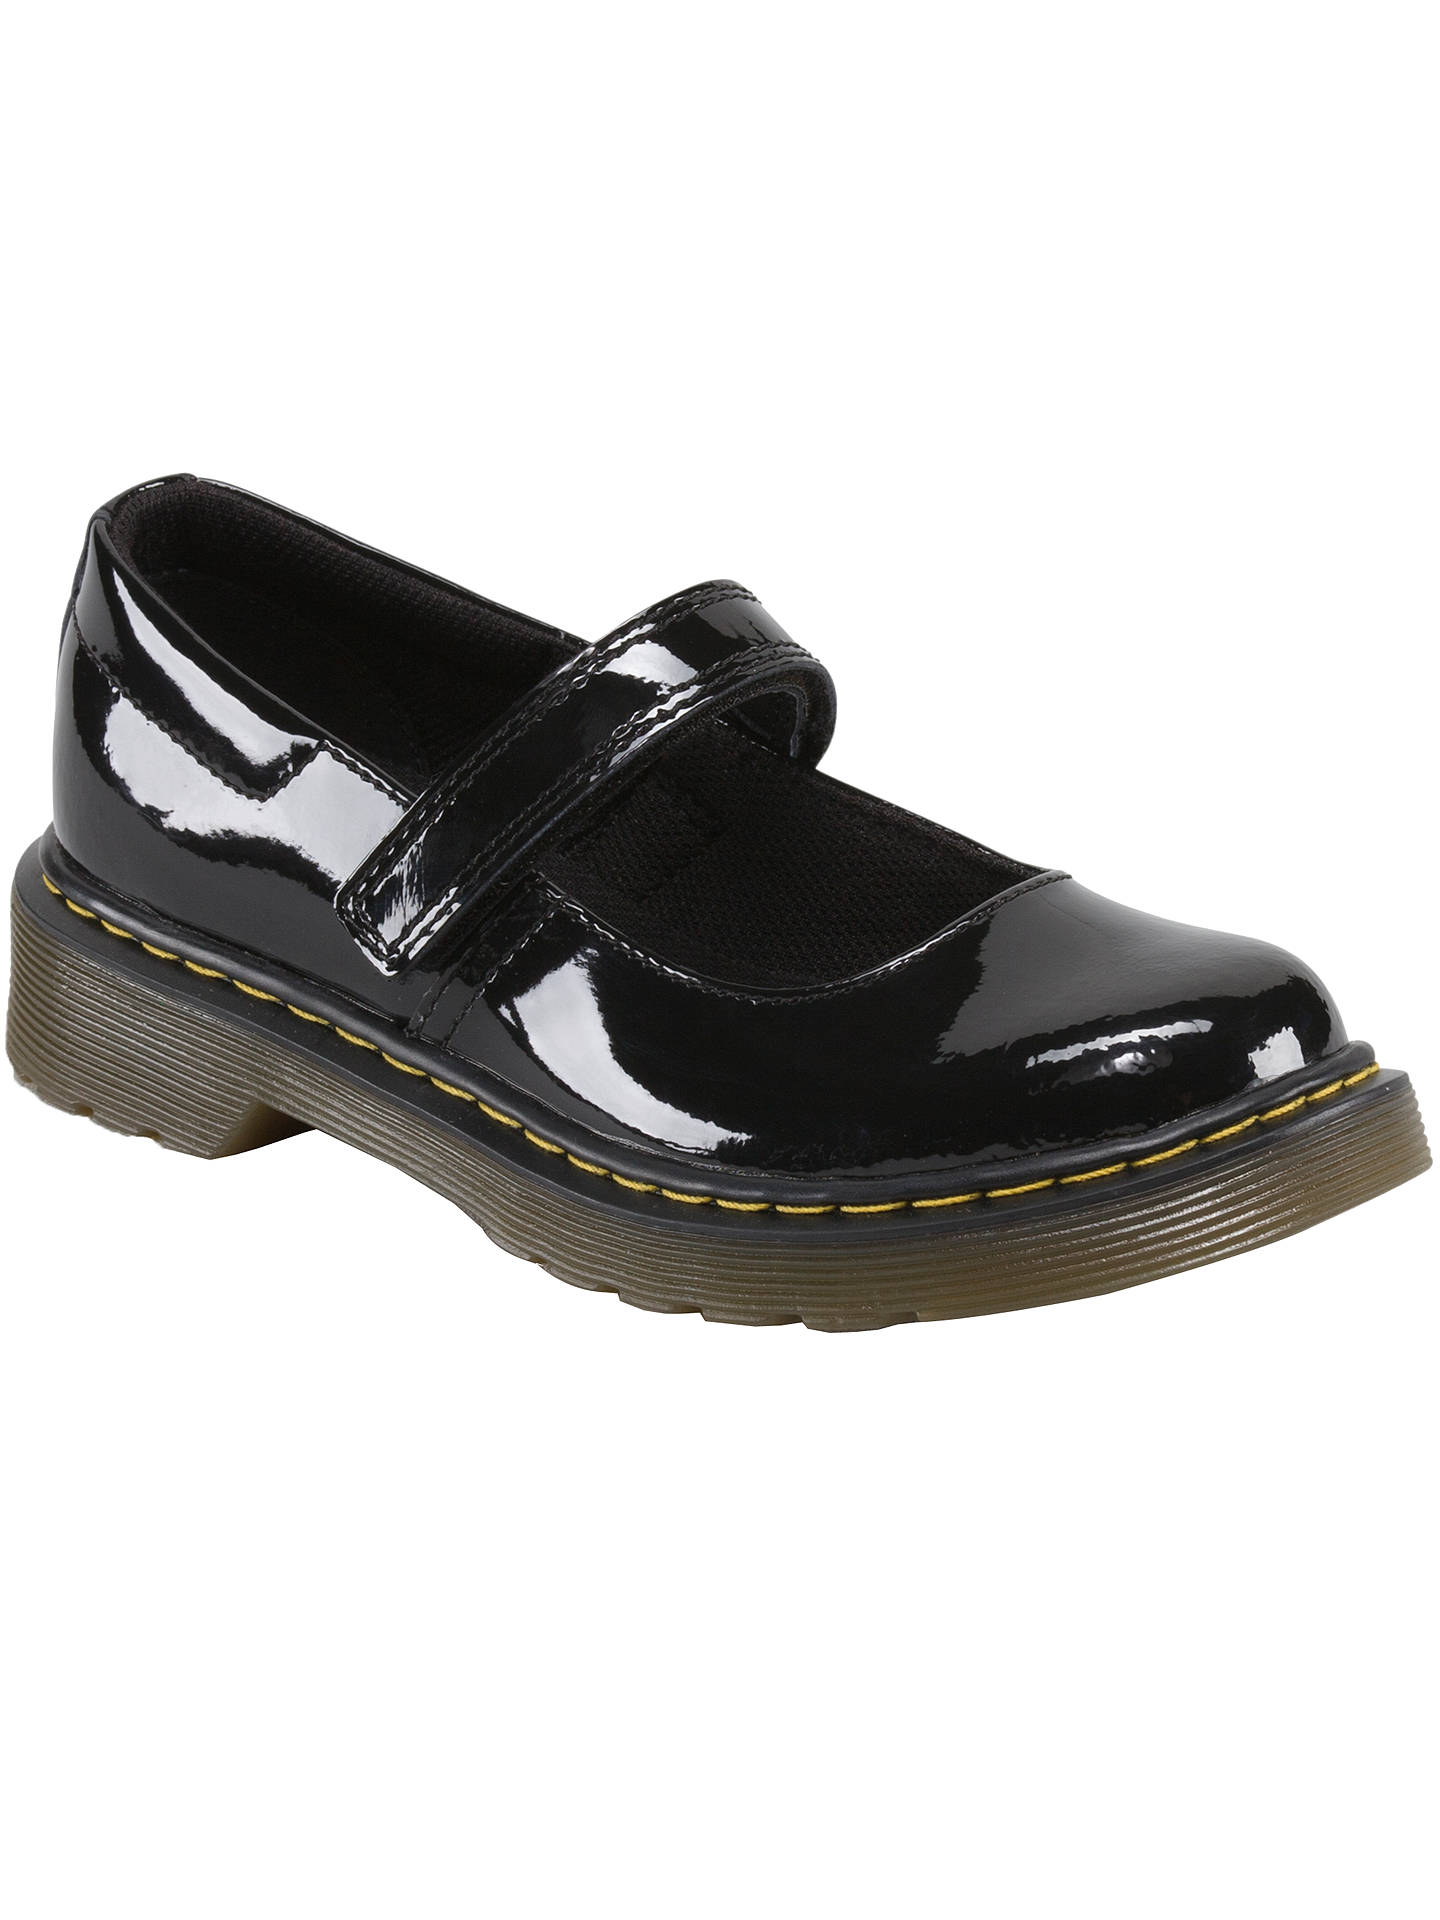 Dr Martens Children's Tully Mary Jane Shoes, Black at John